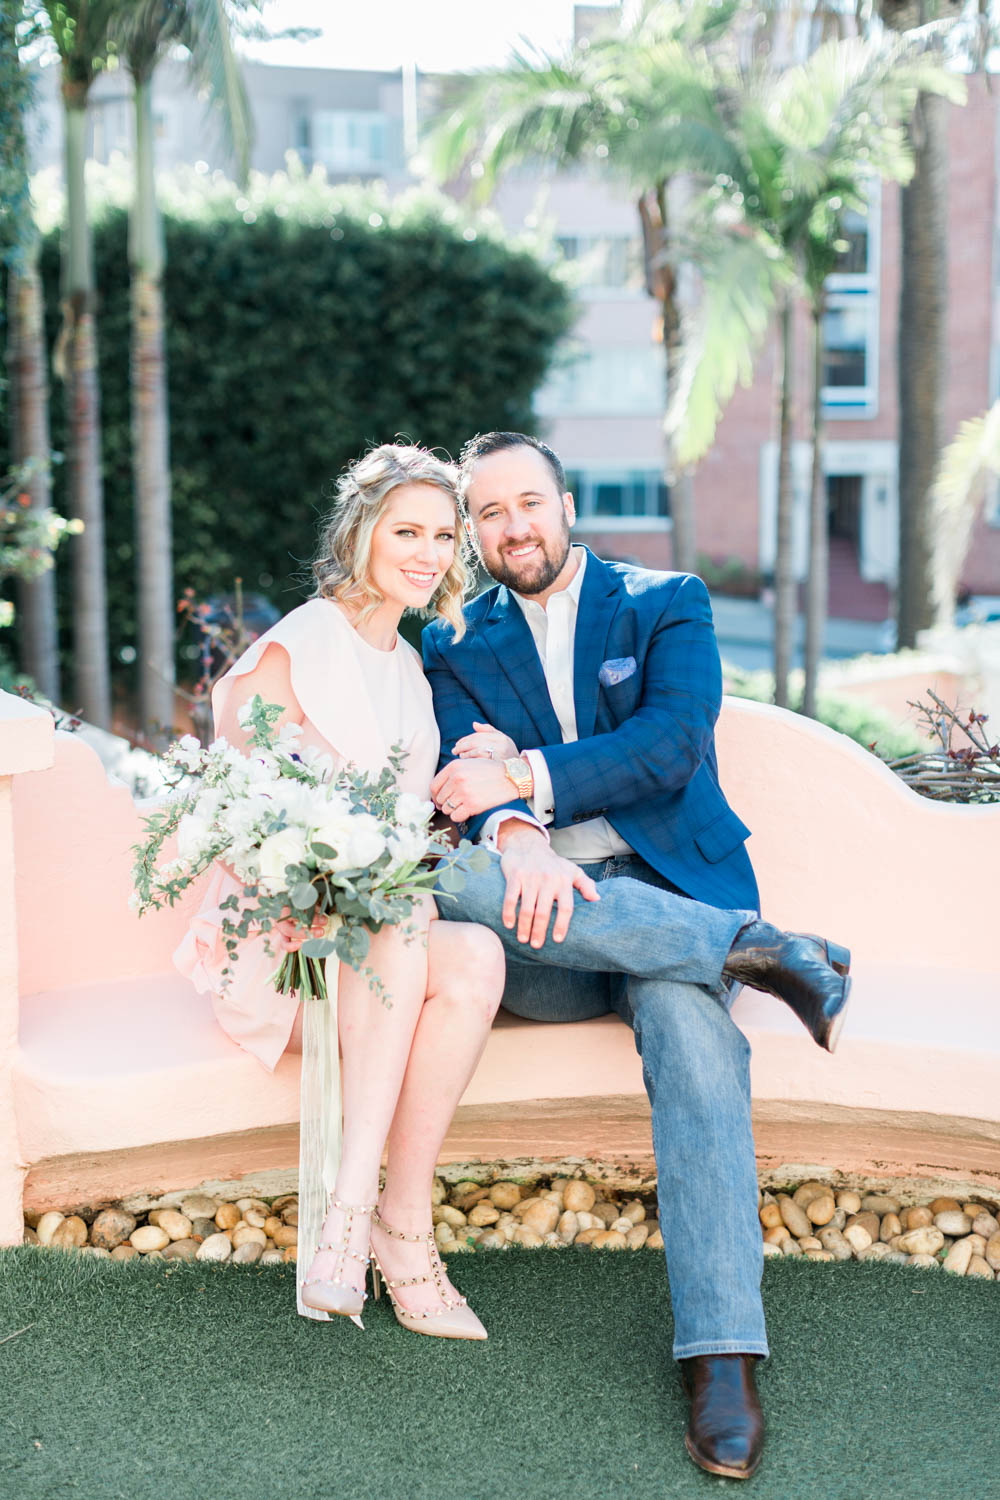 La Valencia Wedding Venue, Cavin Elizabeth Photography